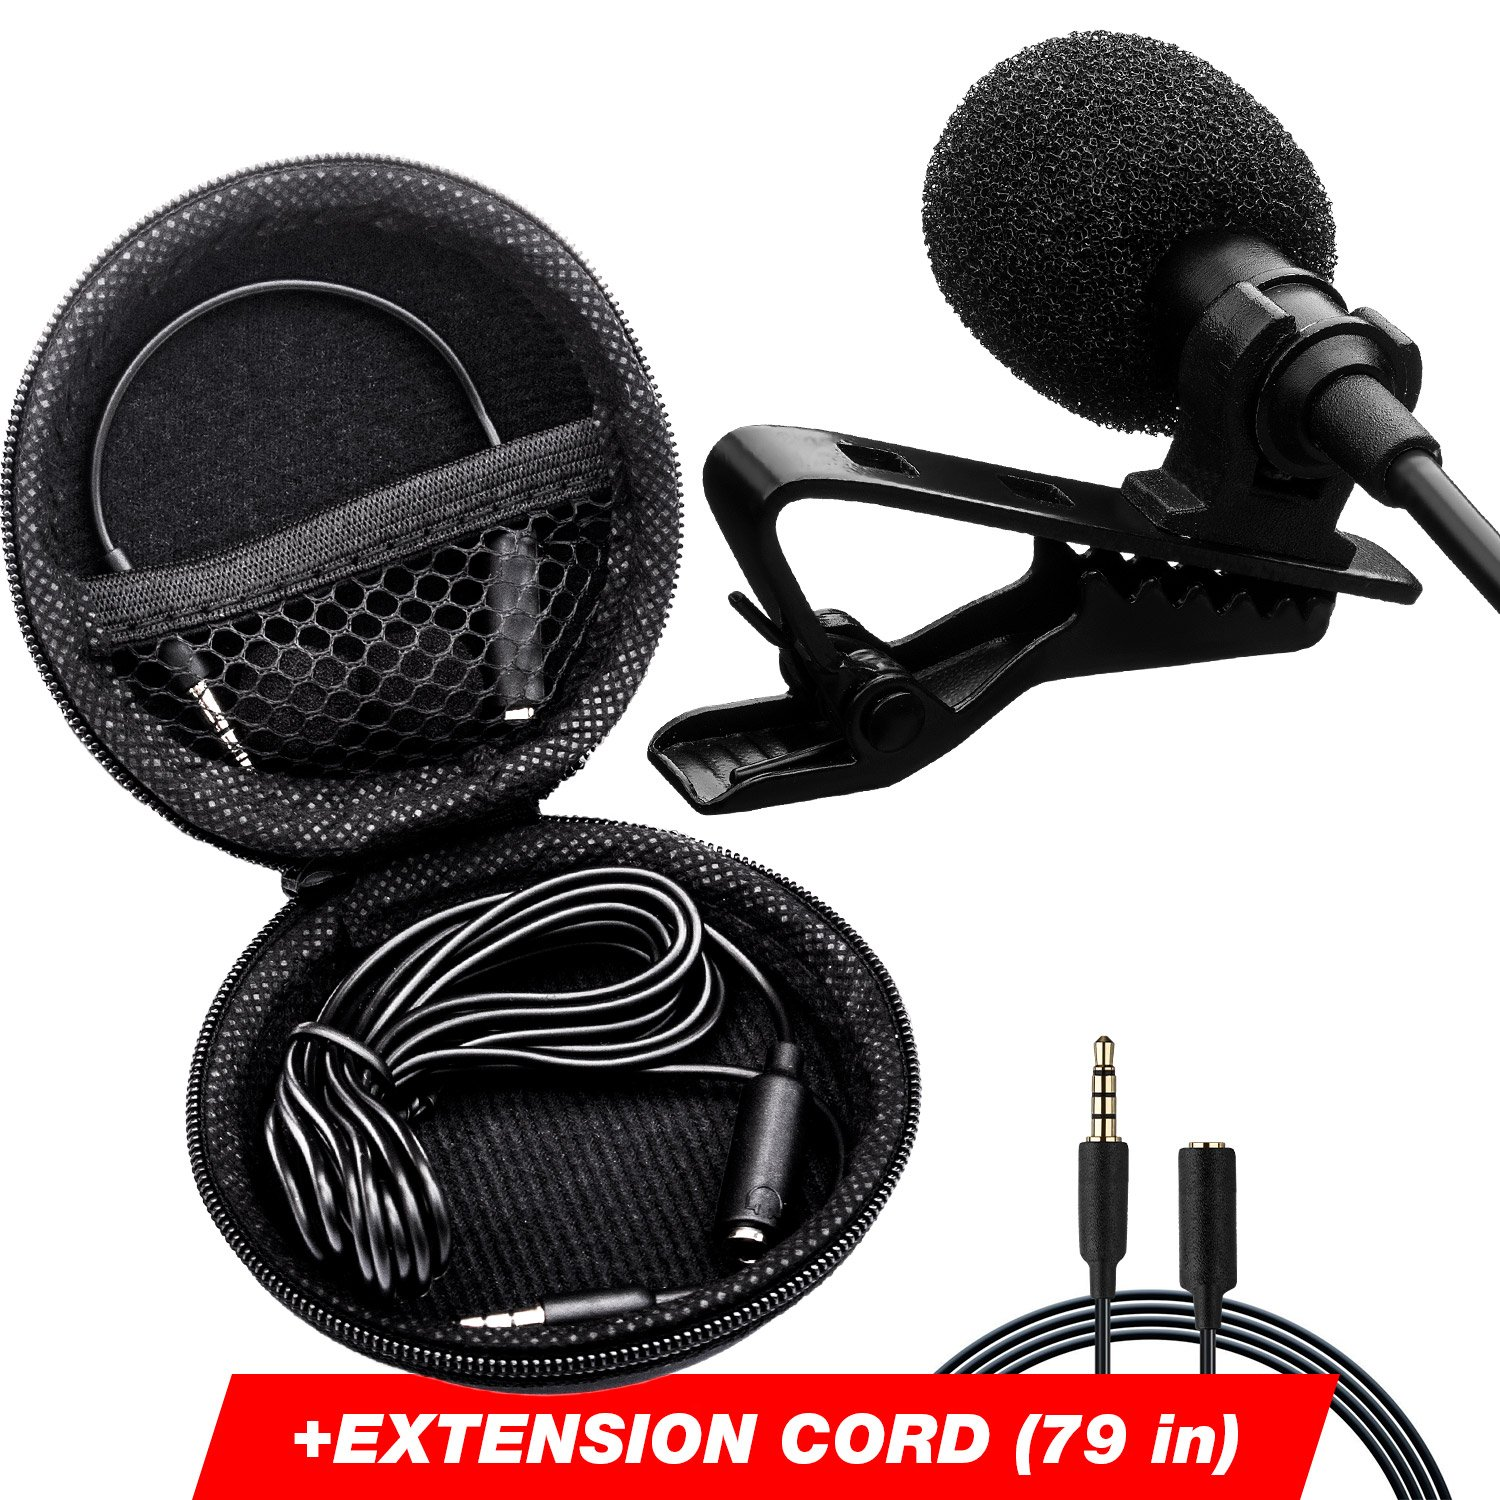 Professional Lavalier Microphone - Long Cord Lapel Mic - Iphone Microphone for Podcast, YouTube, Recording Interview, Voice Dictation and Speech - with Easy Clip-On System